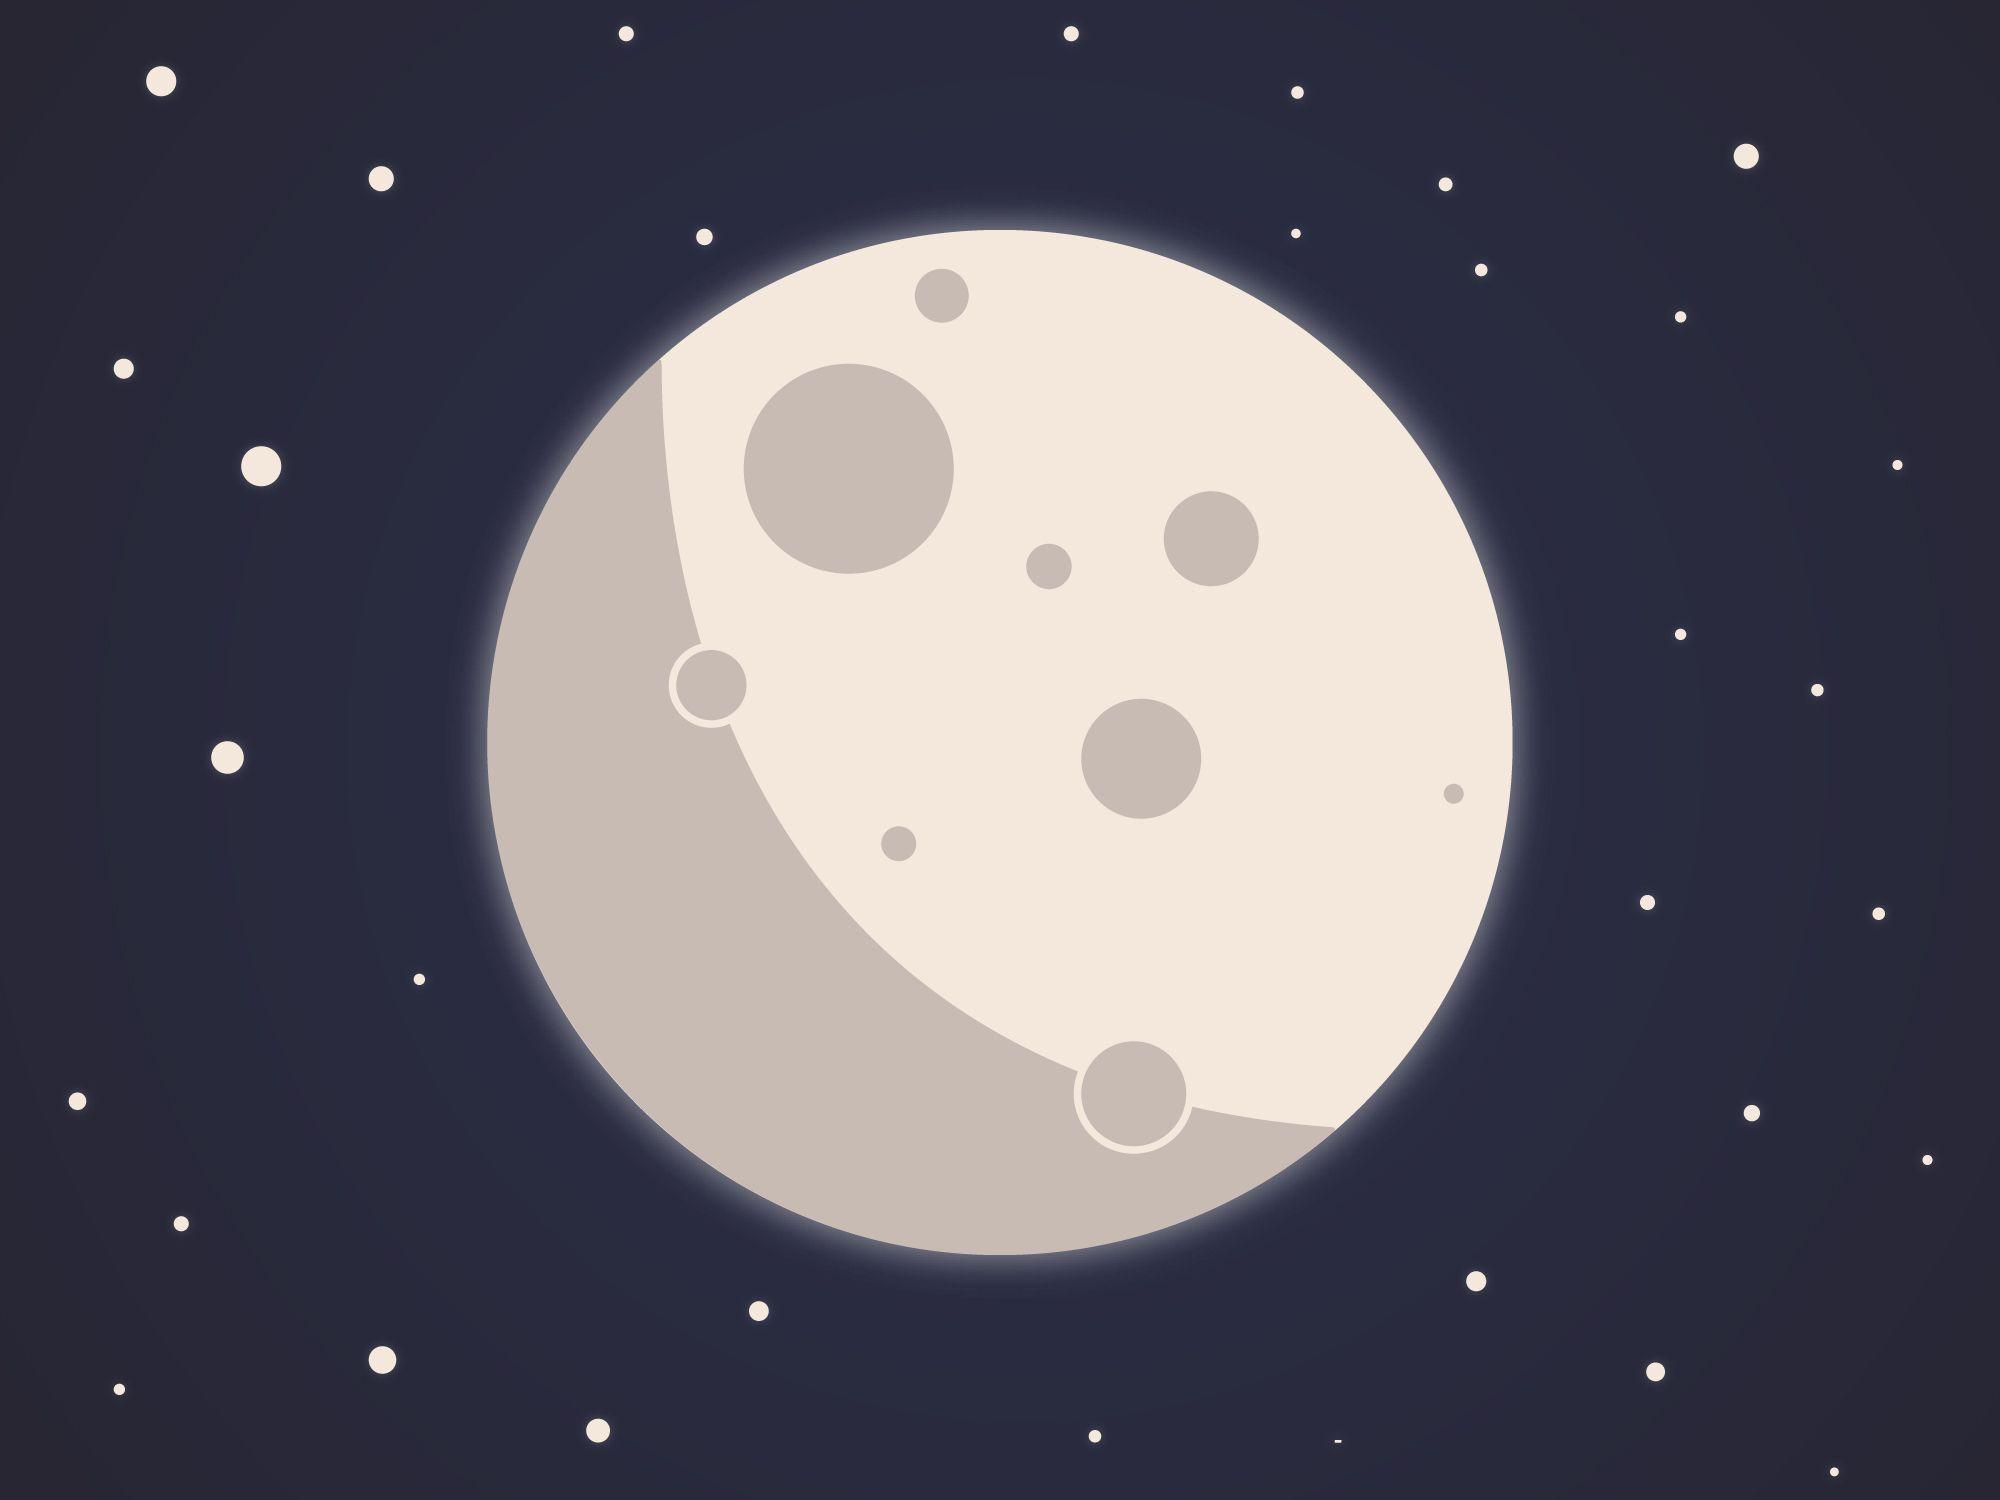 The Moon vector design minimal.